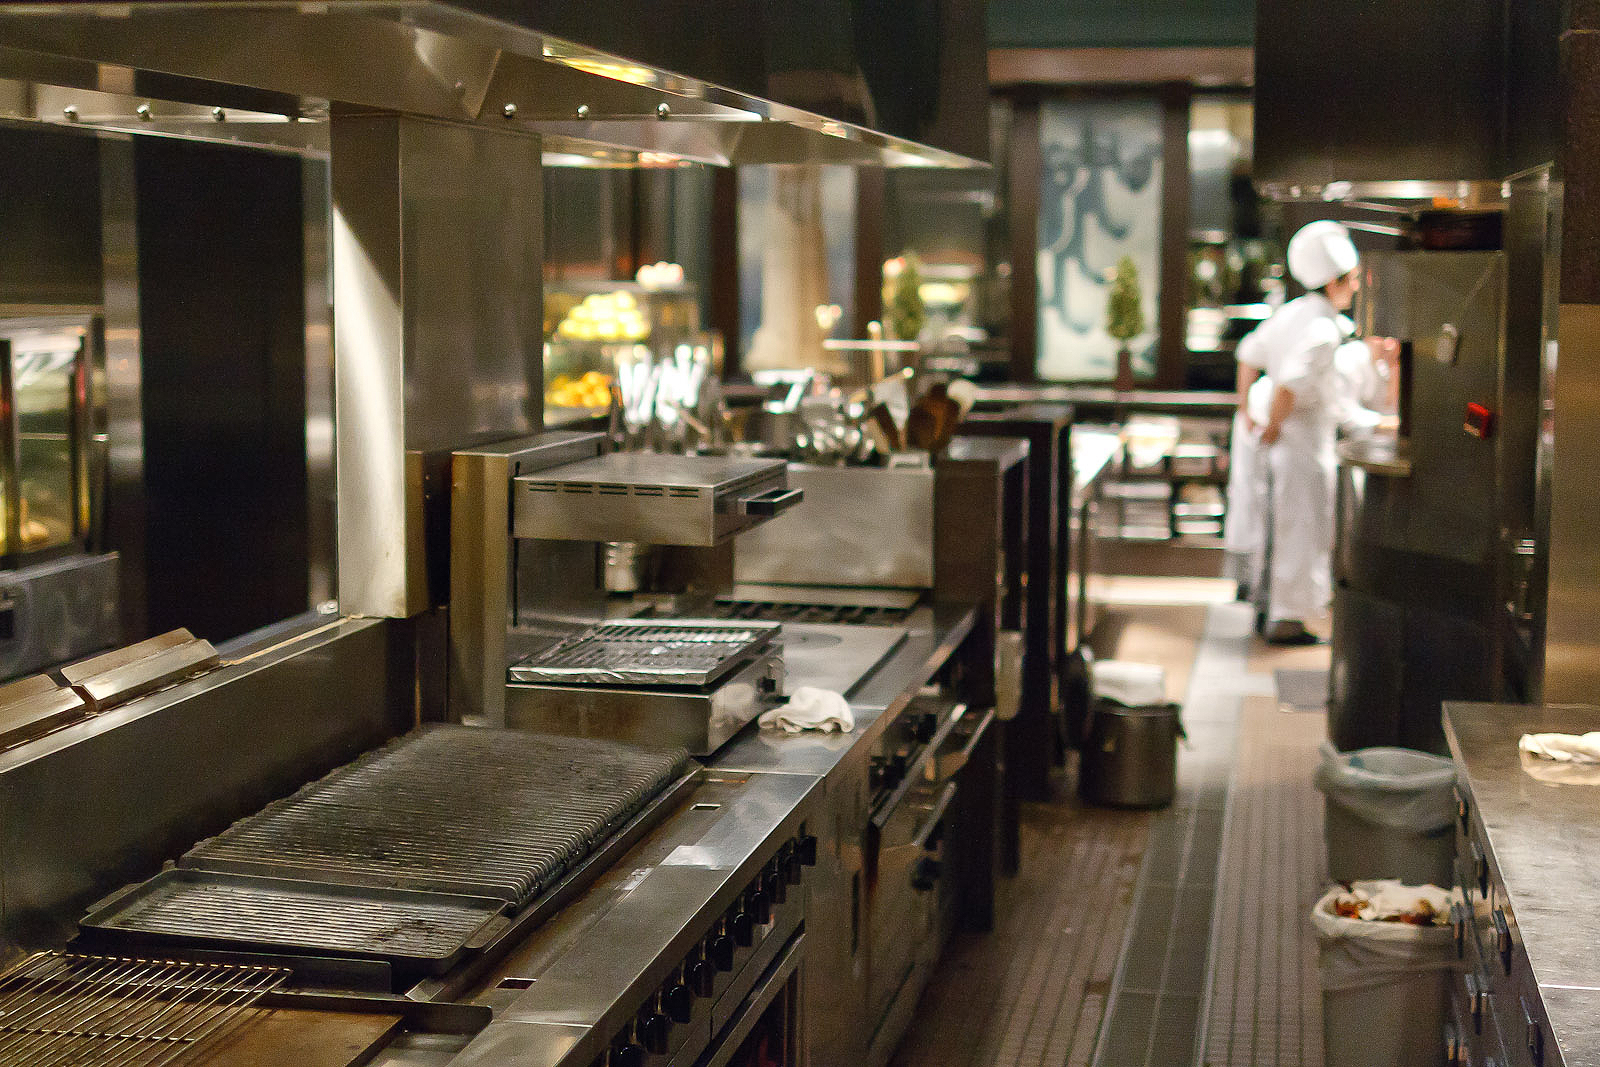 New York Grill, Tokyo - Kitchen After Hours